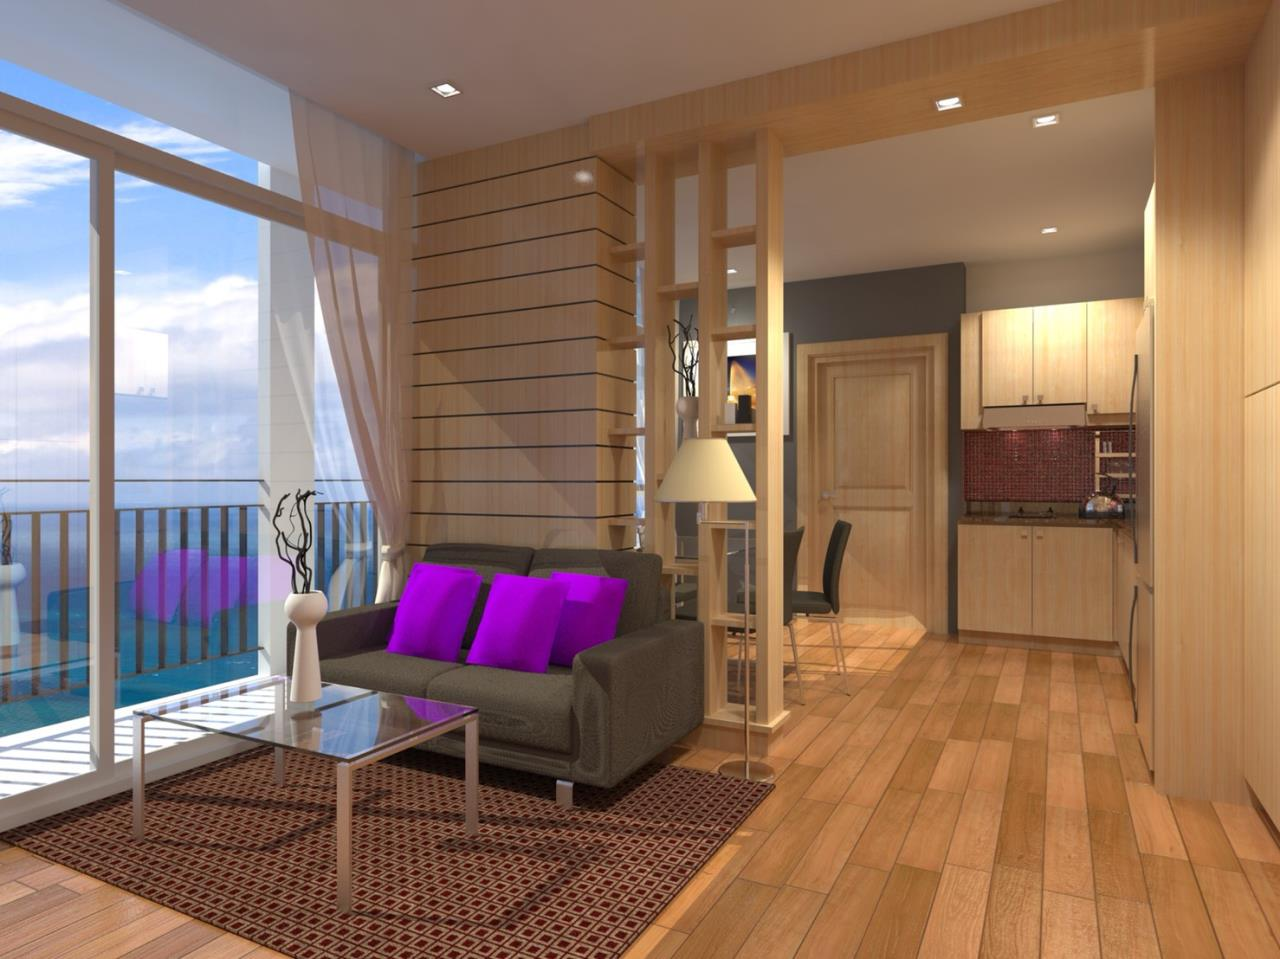 Signature Realty ( Thailand ) Co Ltd Agency's Furnished 1bedroom 46 sq.m condo with jacuzzi floor 21-31 at The Grand Jomtein Beach Pattaya 31